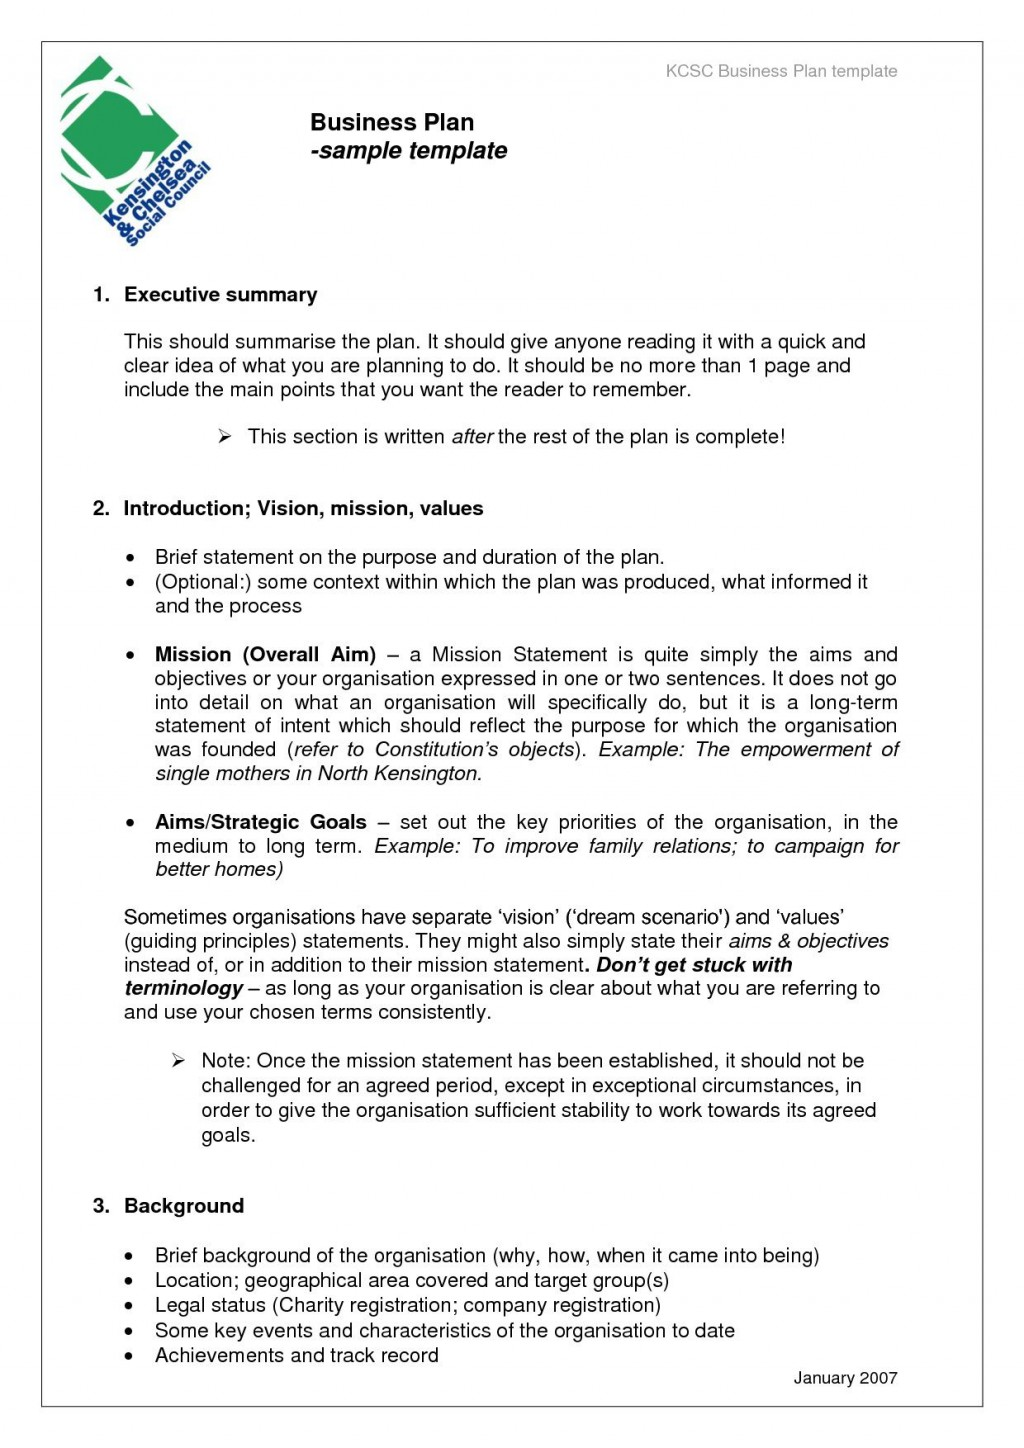 007 Marvelou Free Busines Plan Template Word Highest Clarity  Download Document Sample DocLarge